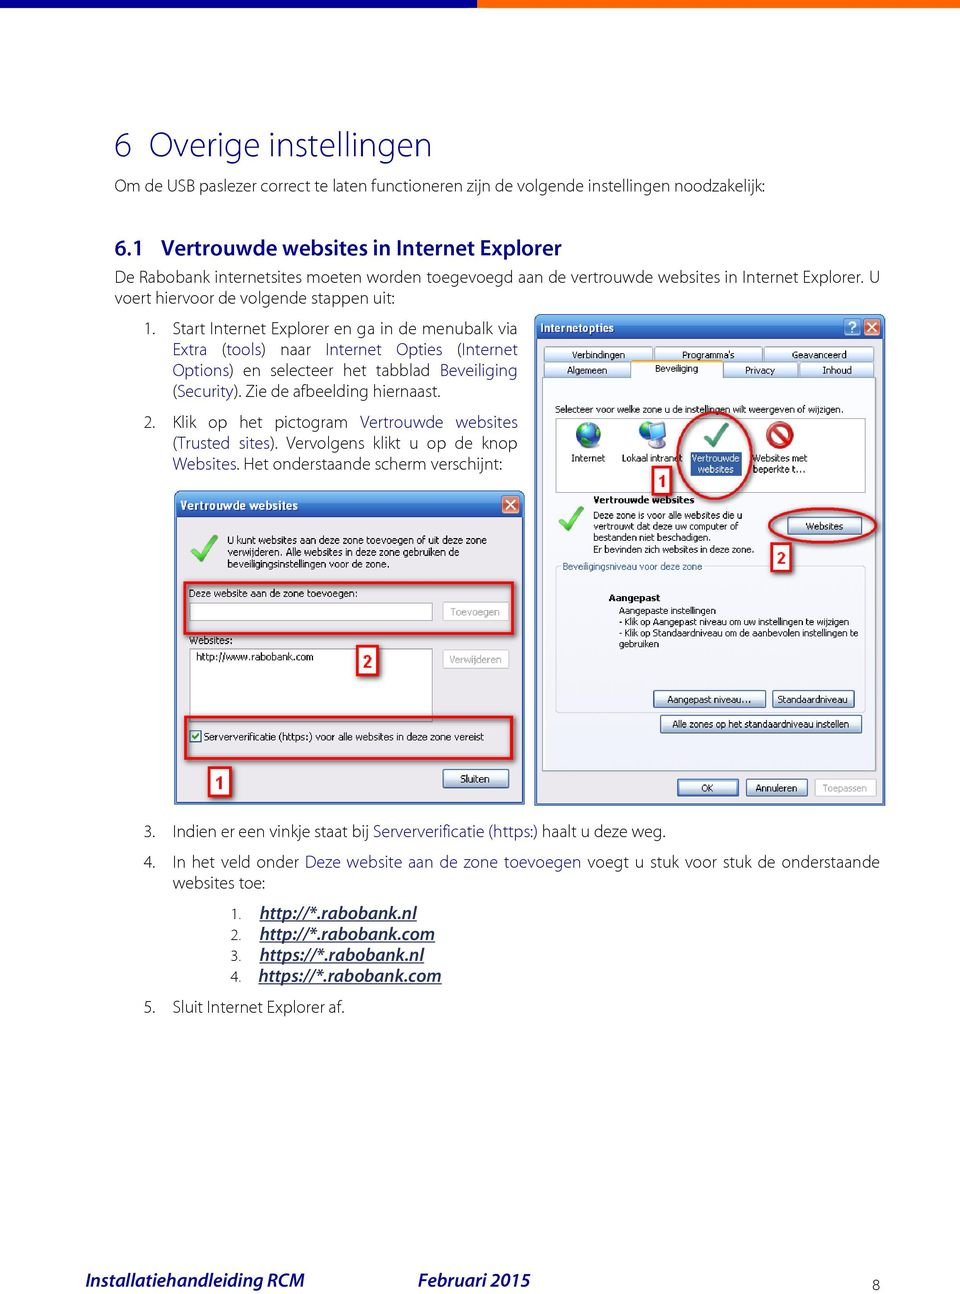 Start Internet Explorer en ga in de menubalk via Extra (tools) naar Internet Opties (Internet Options) en selecteer het tabblad Beveiliging (Security). Zie de afbeelding hiernaast. 2.